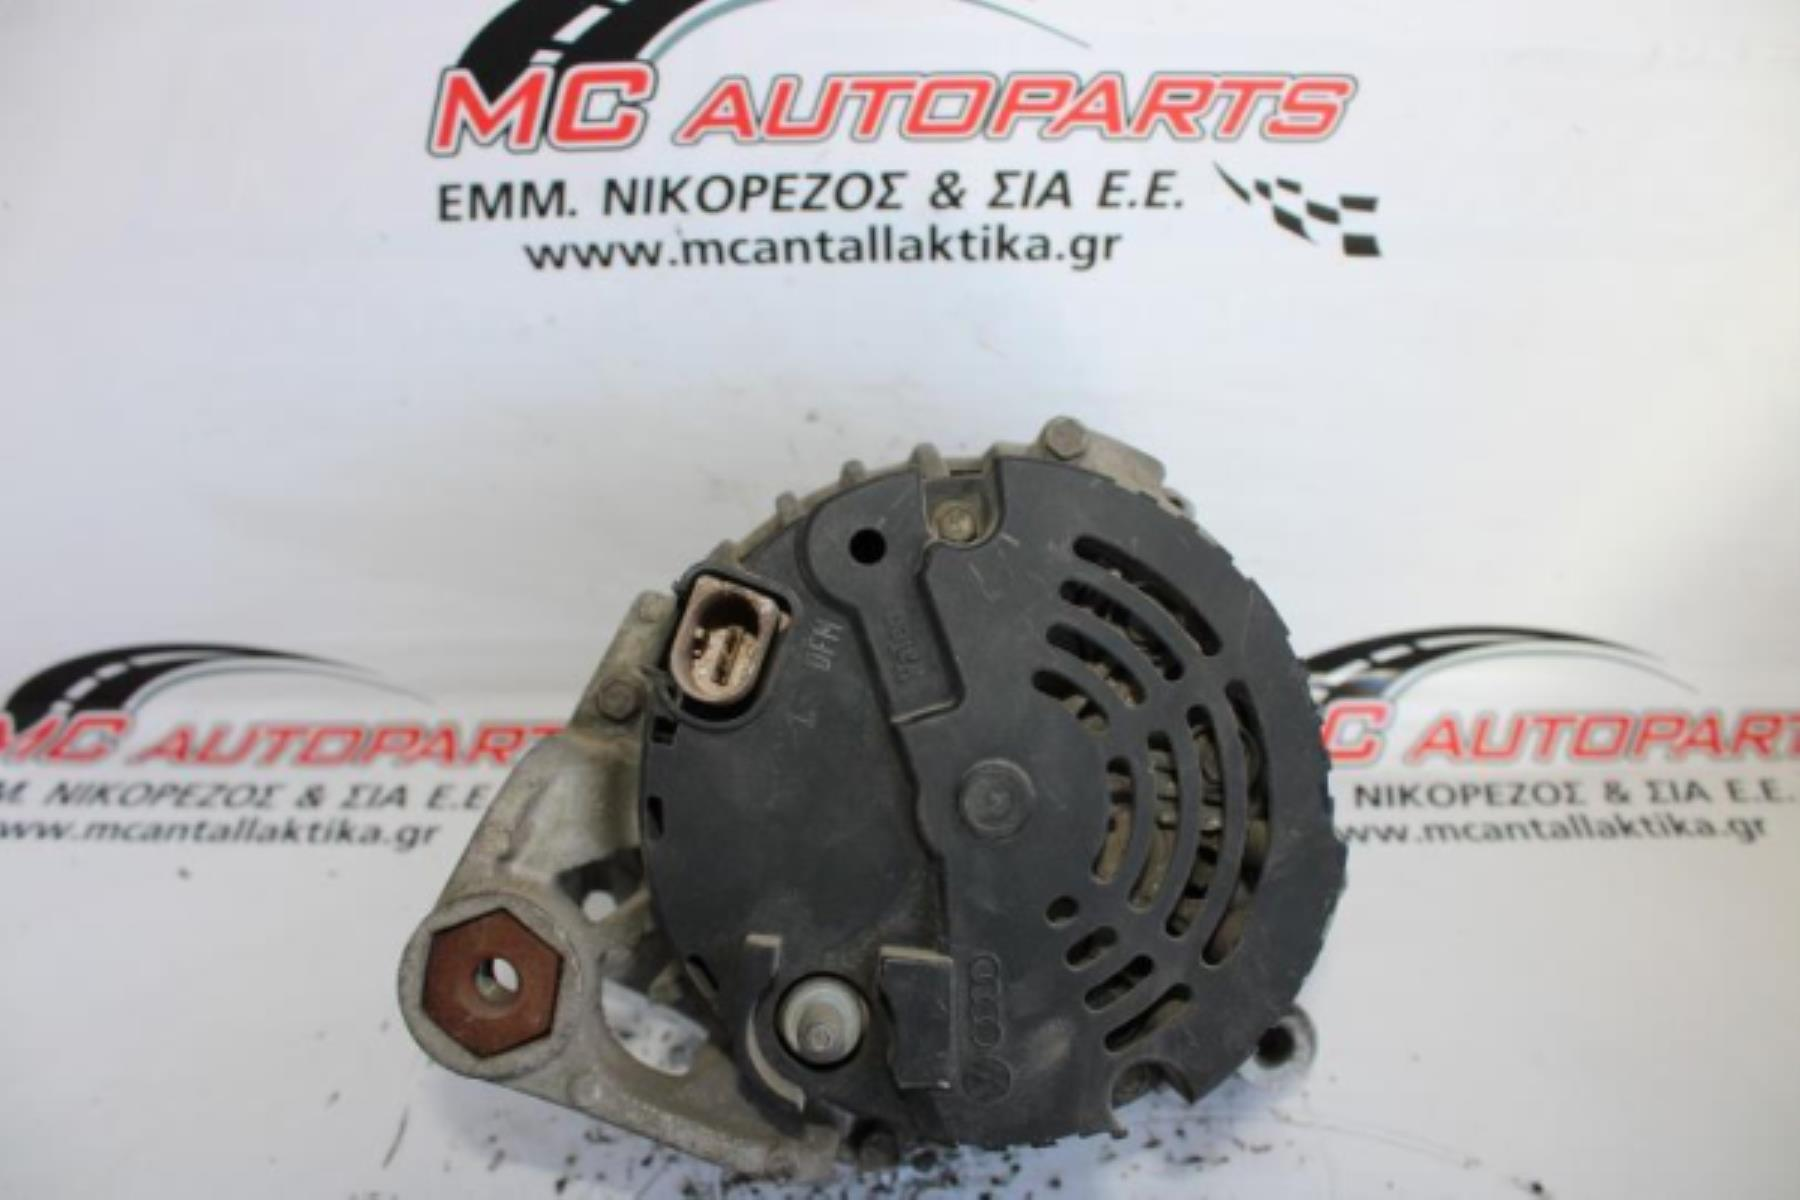 Picture of Δυναμό  AUDI A6 (1998-2004)  06C903016A   120A